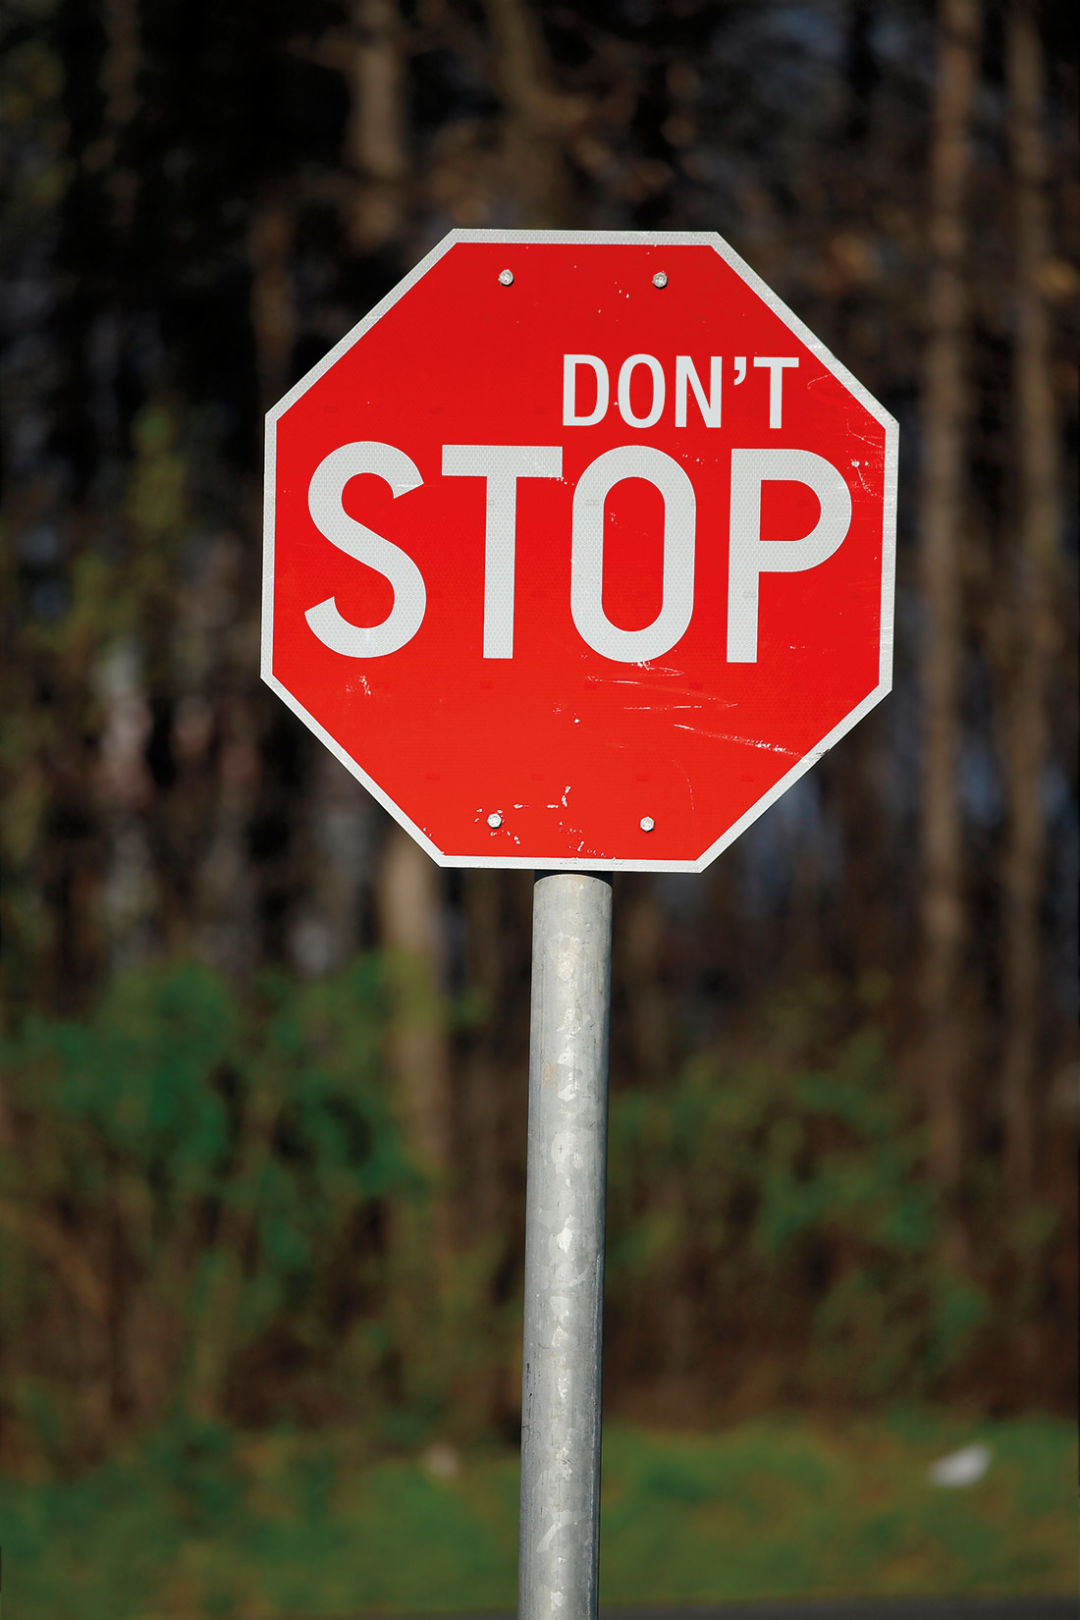 0713 rolling with it dont stop sign n5hkr9